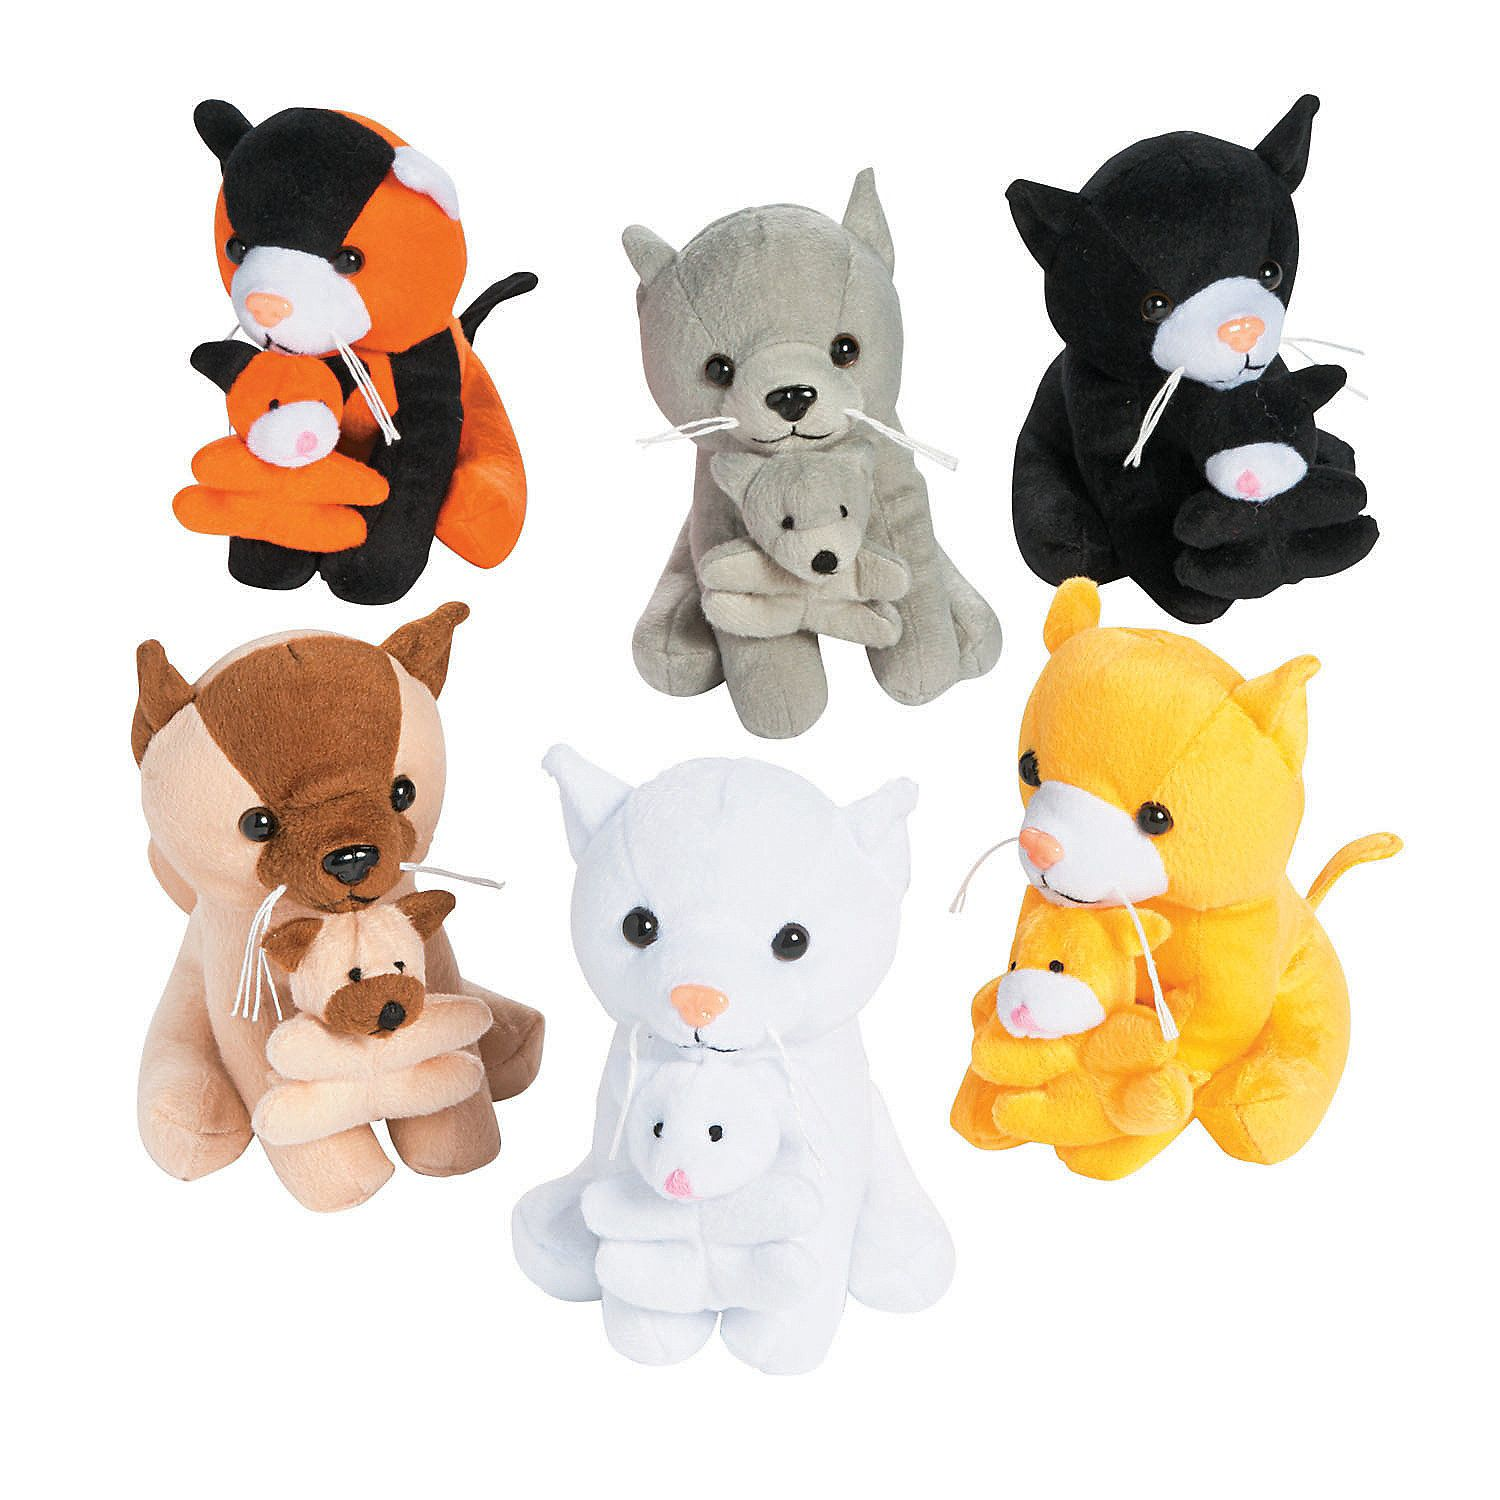 Stuffed Cats Holding Kittens Cat Party Cat Birthday Kittens Cutest